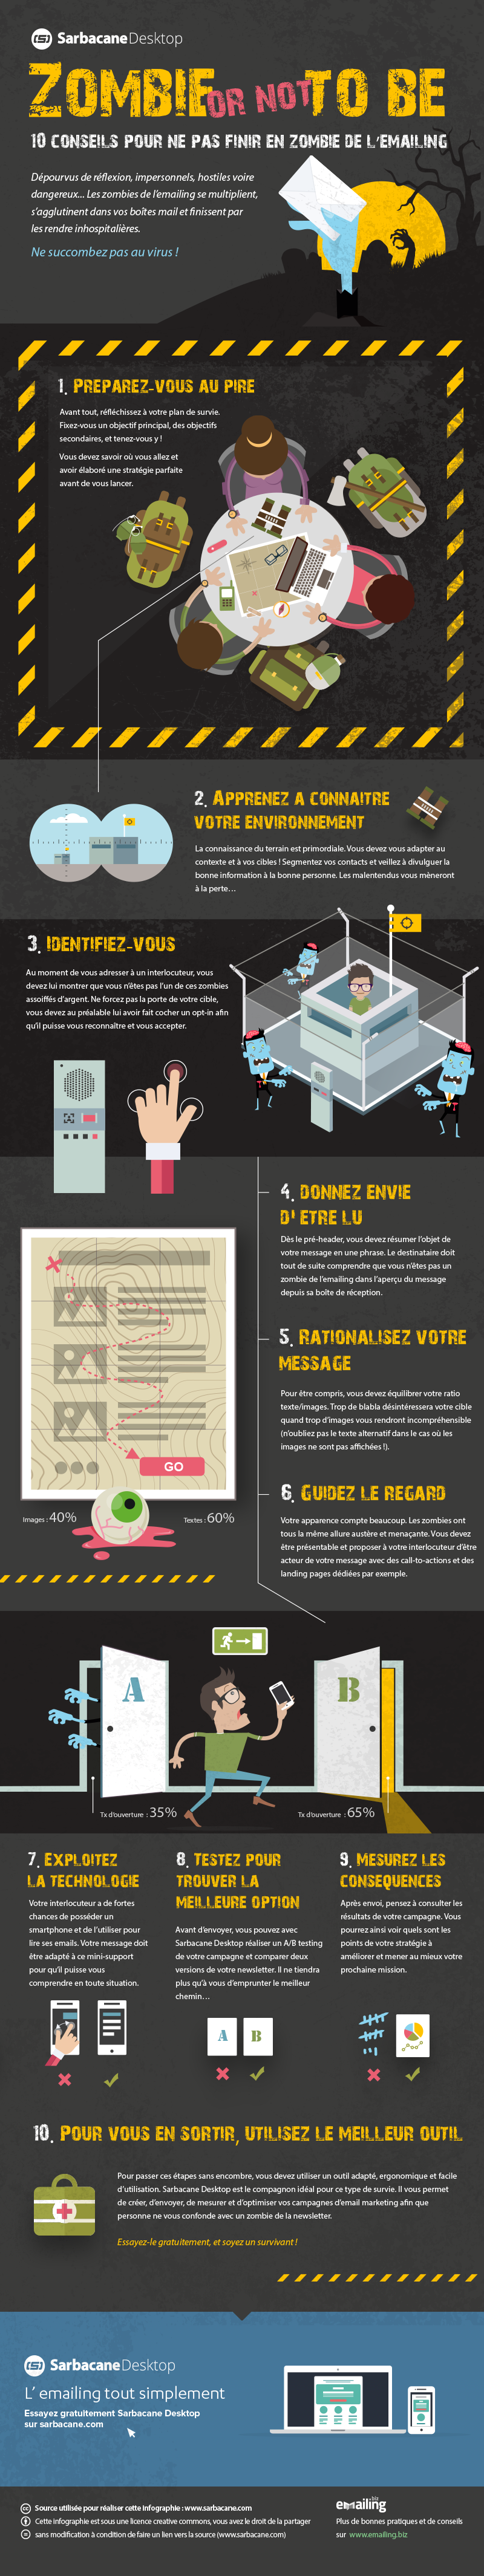 Infographie Emailing Marketing Conseils - Sarbacane